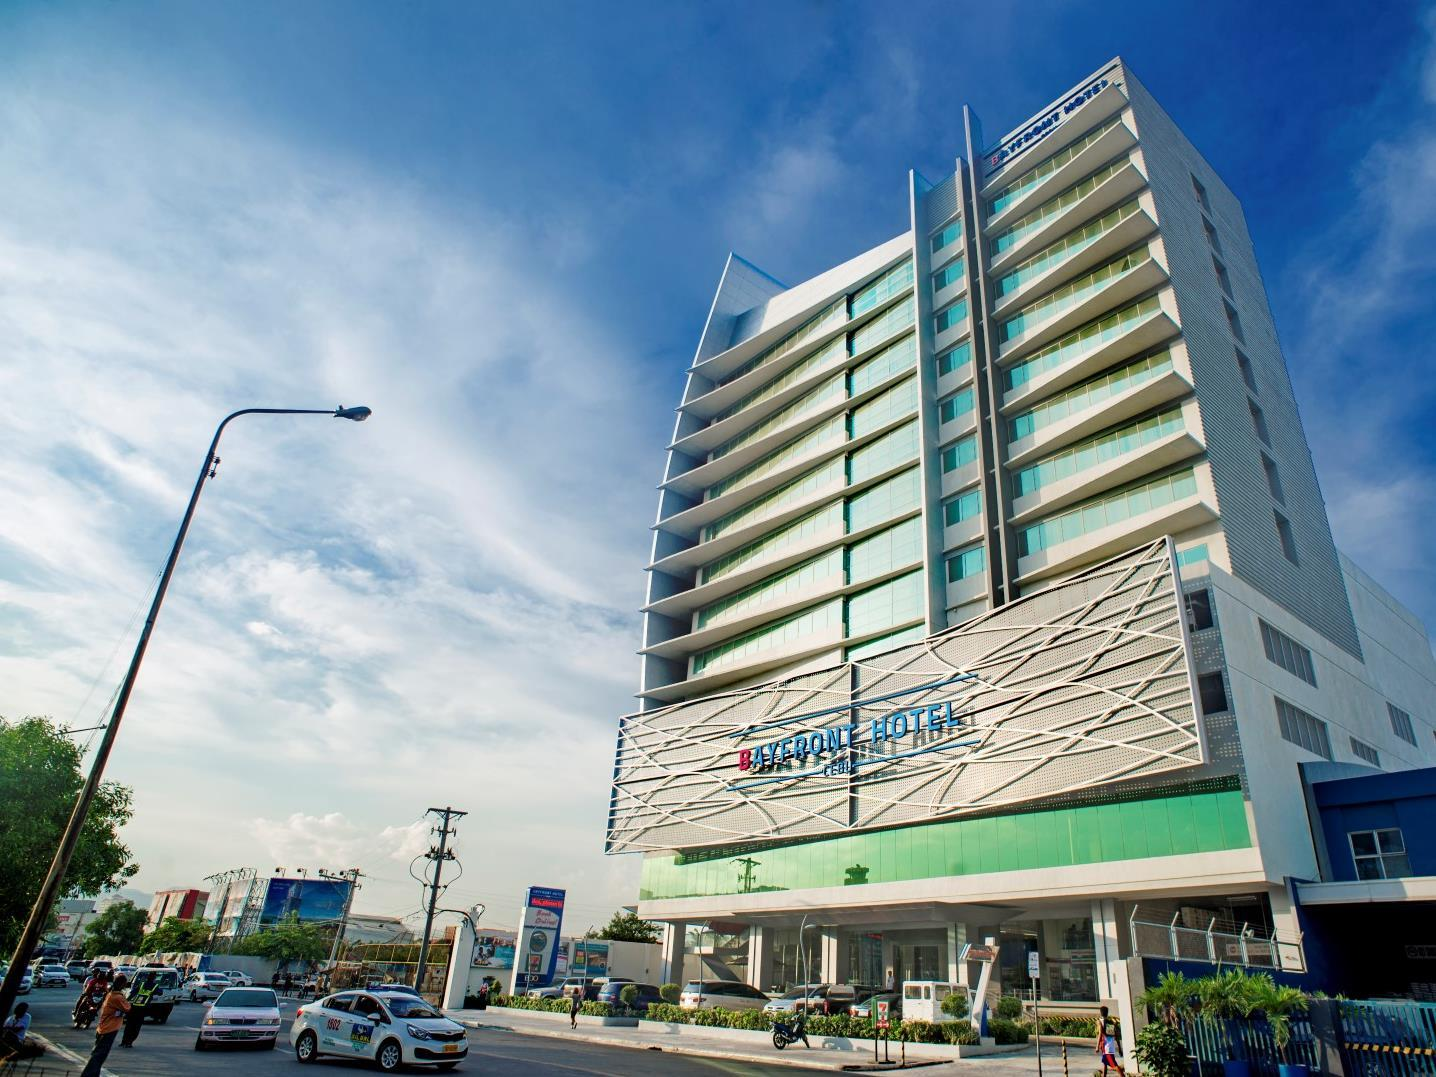 Bayfront Hotel Cebu Cebu City Cebu Philippines Great Discounted Rates